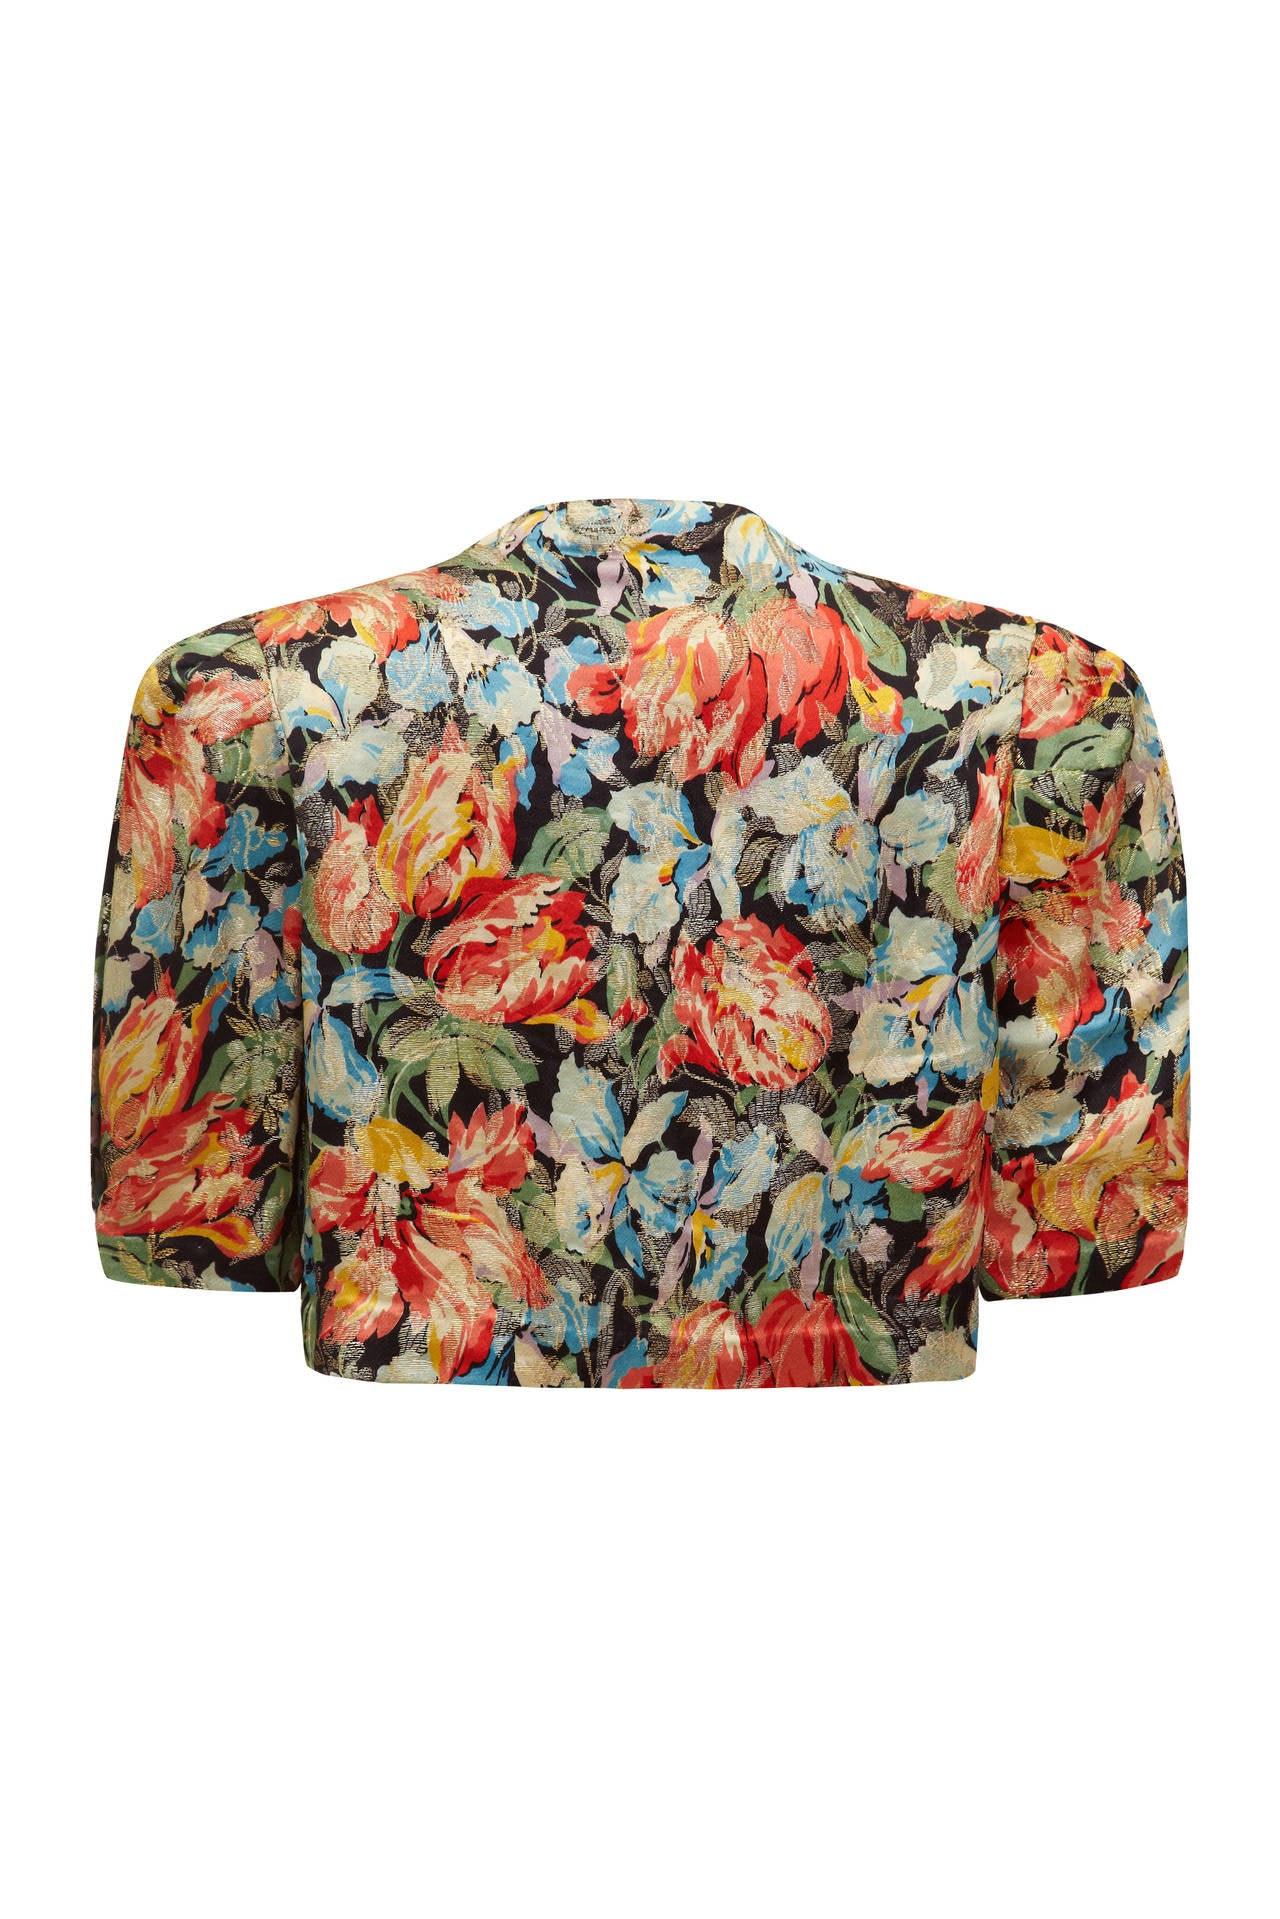 Absolutely stunning 1930s bright floral print jacket/ bolero with beautiful gold lame floral design layered on top. As this piece is worn open with no fastenings there is slight flexibility in size and there is slight padding to the shoulders to